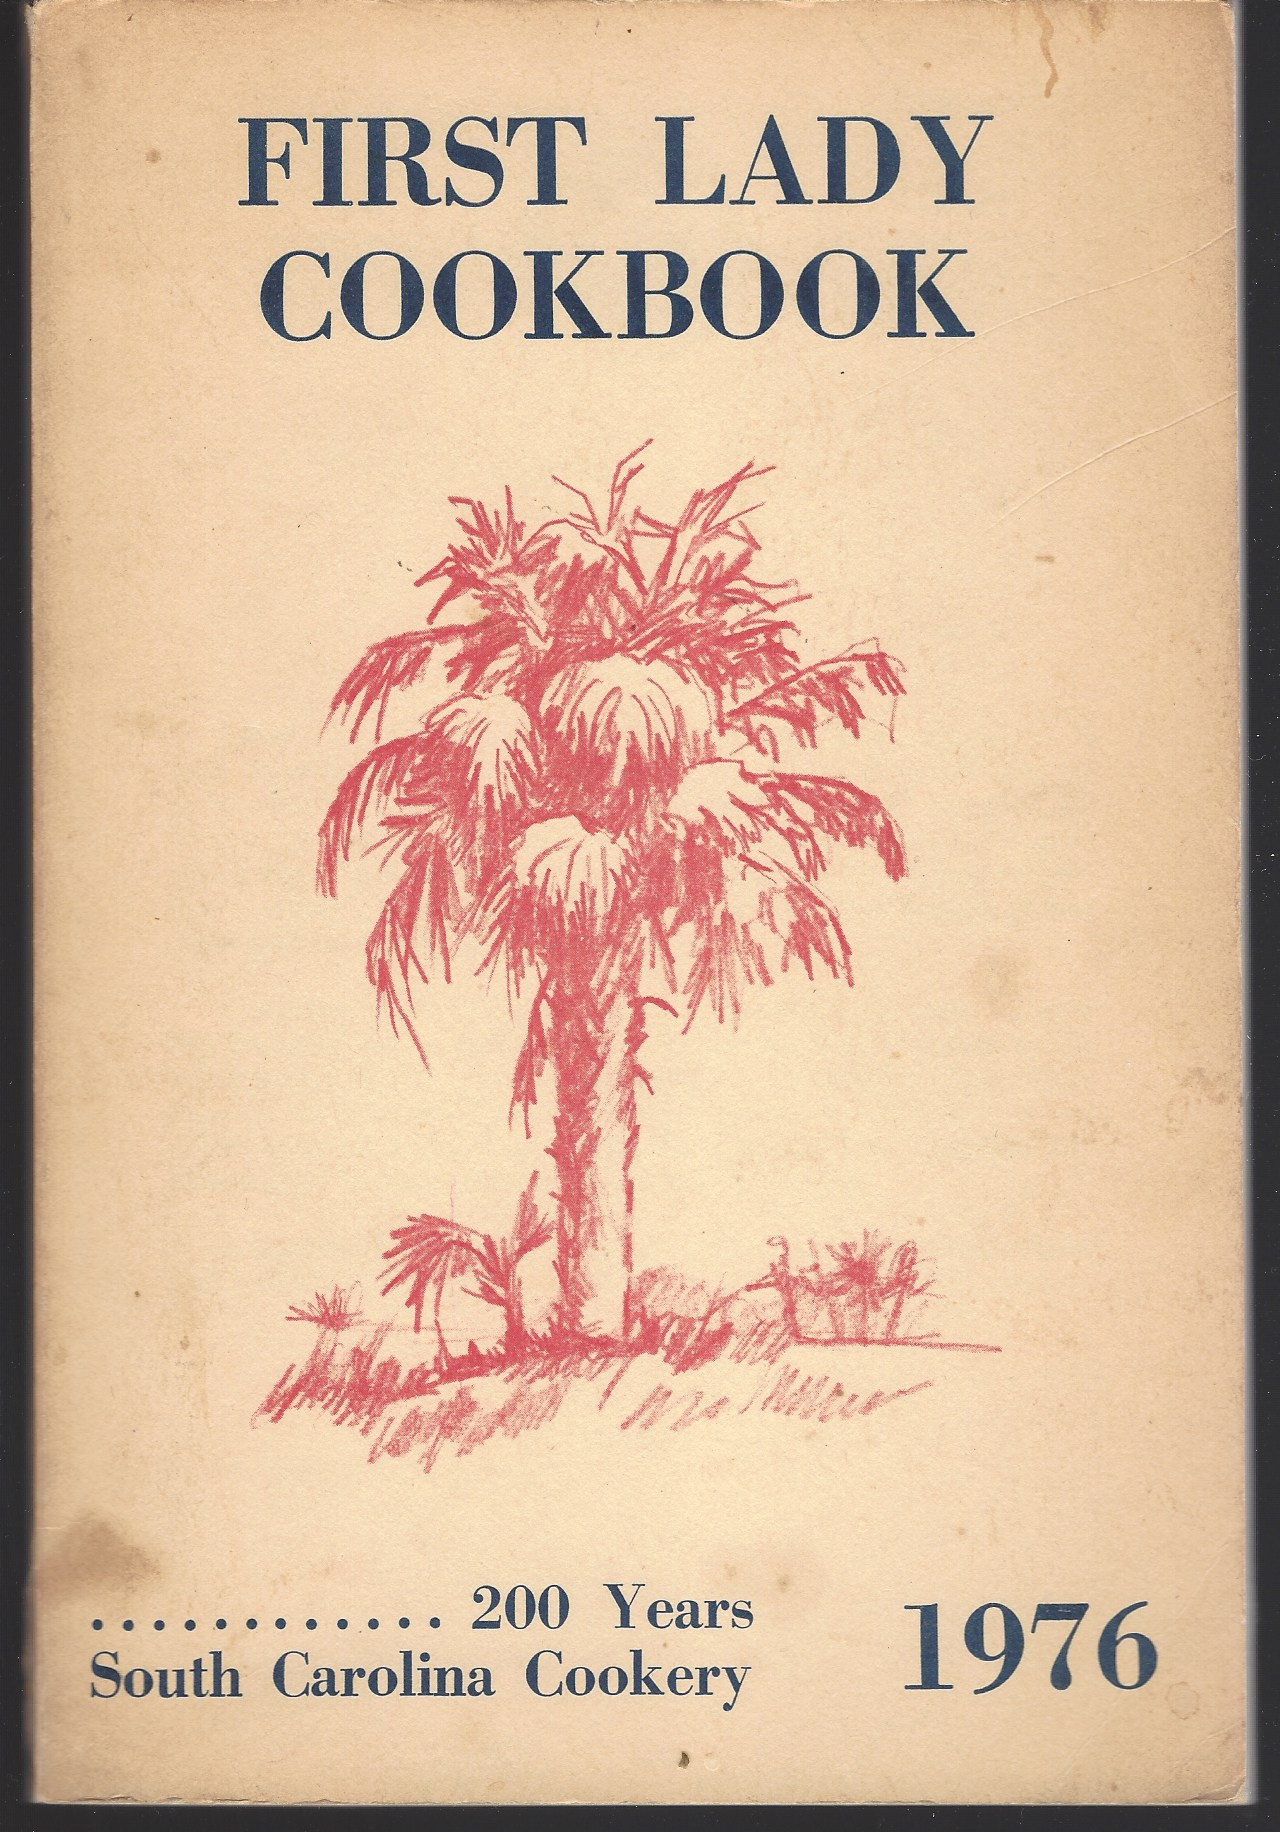 Image for FIRST LADY COOKBOOK 1976 200 Years South Carolina Cookery